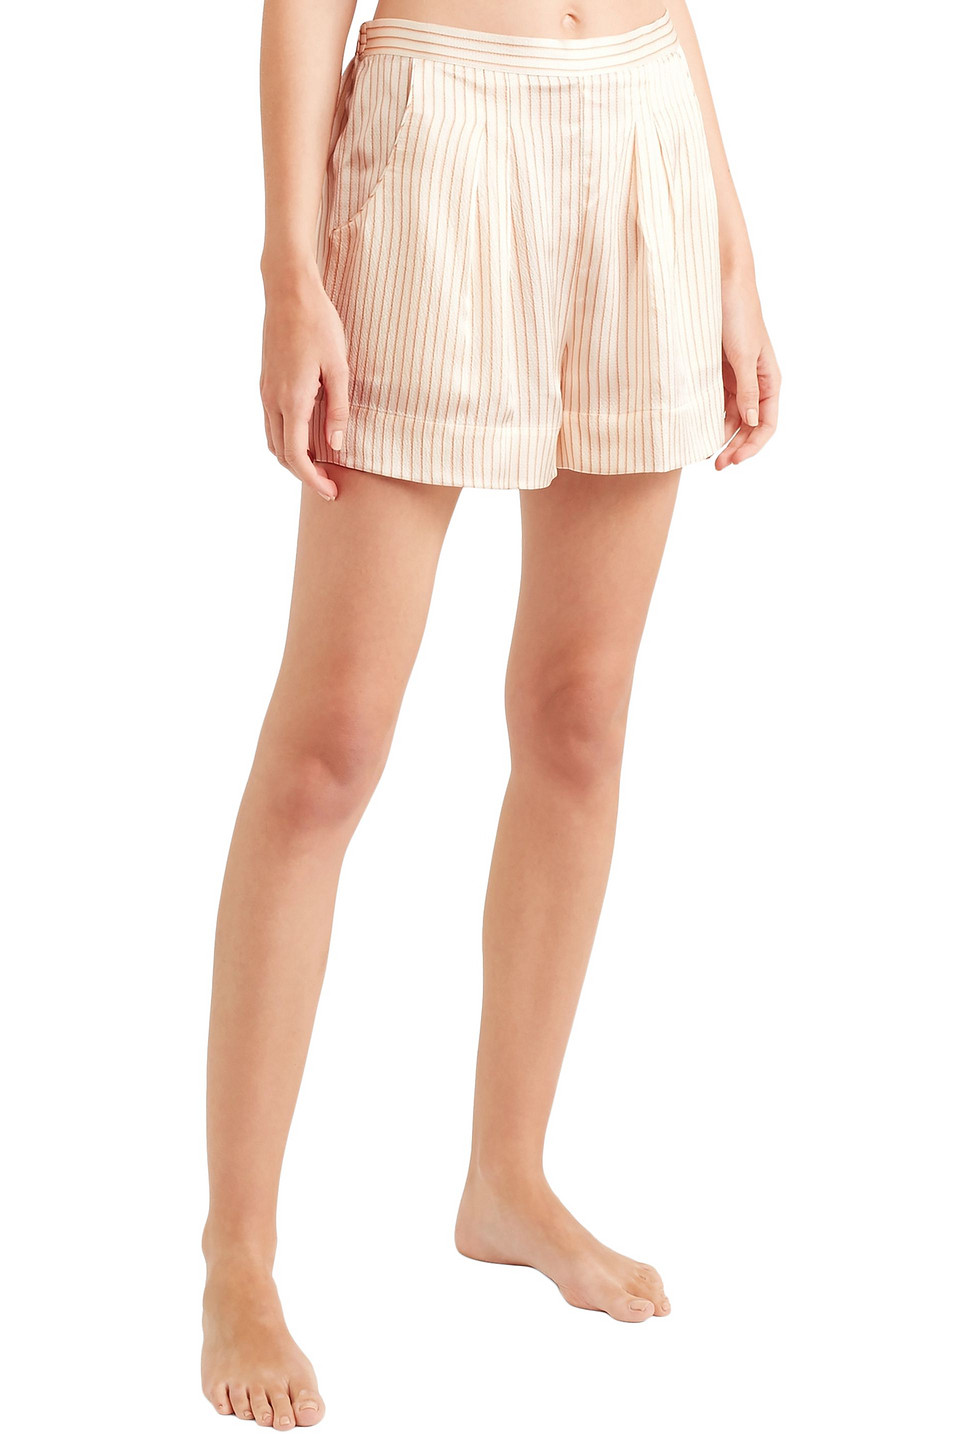 Eres | Eres Woman Riga Frutti Hammered Striped Silk-satin Pajama Shorts Cream | Clouty